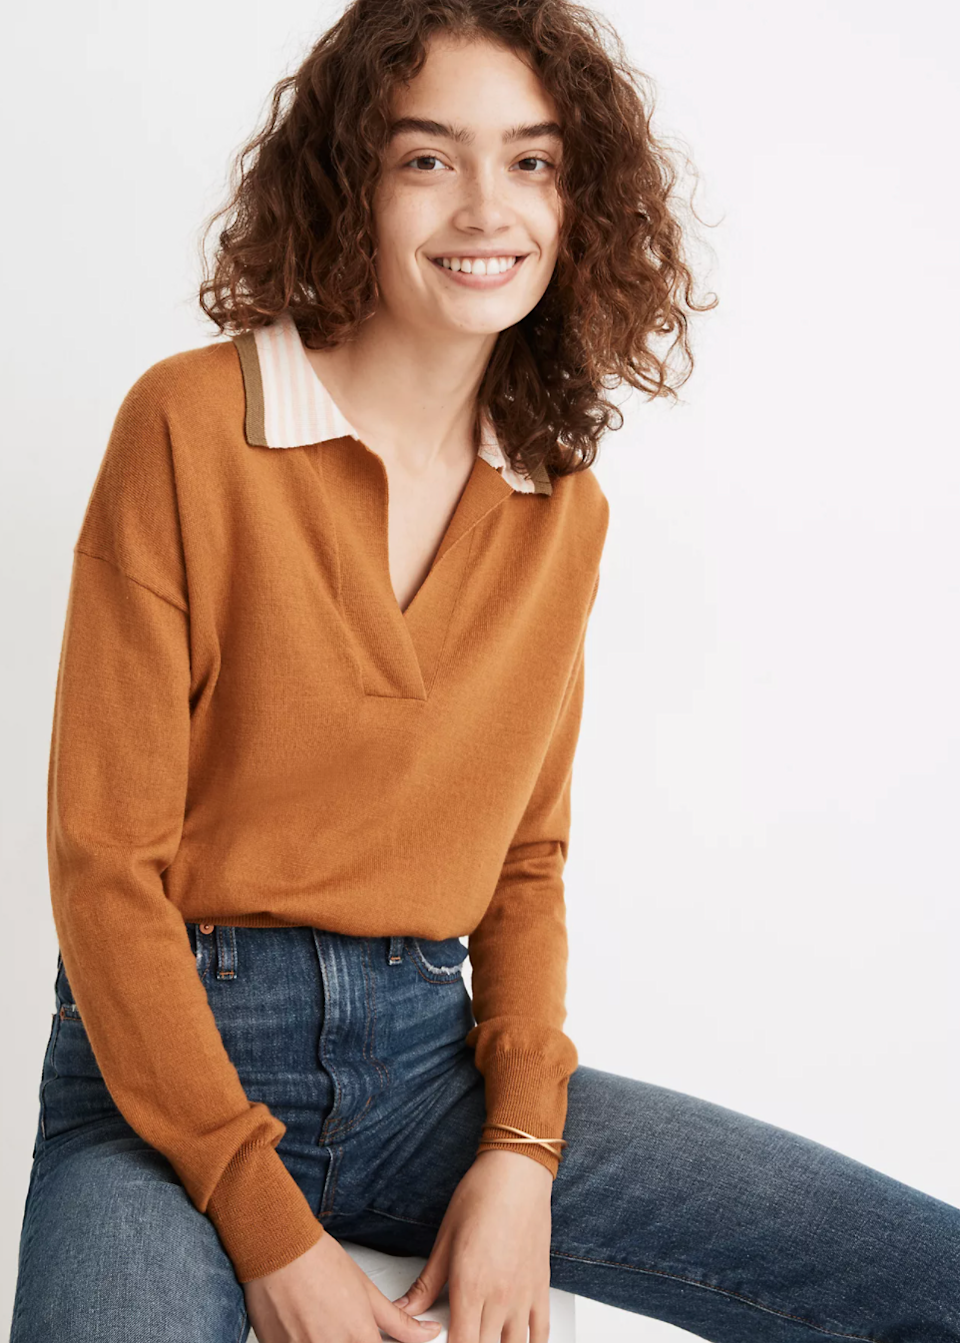 "<br><br><strong>Madewell</strong> Colorblock Polo Sweater, $, available at <a href=""https://go.skimresources.com/?id=30283X879131&url=https%3A%2F%2Fwww.madewell.com%2Fcolorblock-polo-sweater-MA691.html"" rel=""nofollow noopener"" target=""_blank"" data-ylk=""slk:Madewell"" class=""link rapid-noclick-resp"">Madewell</a>"